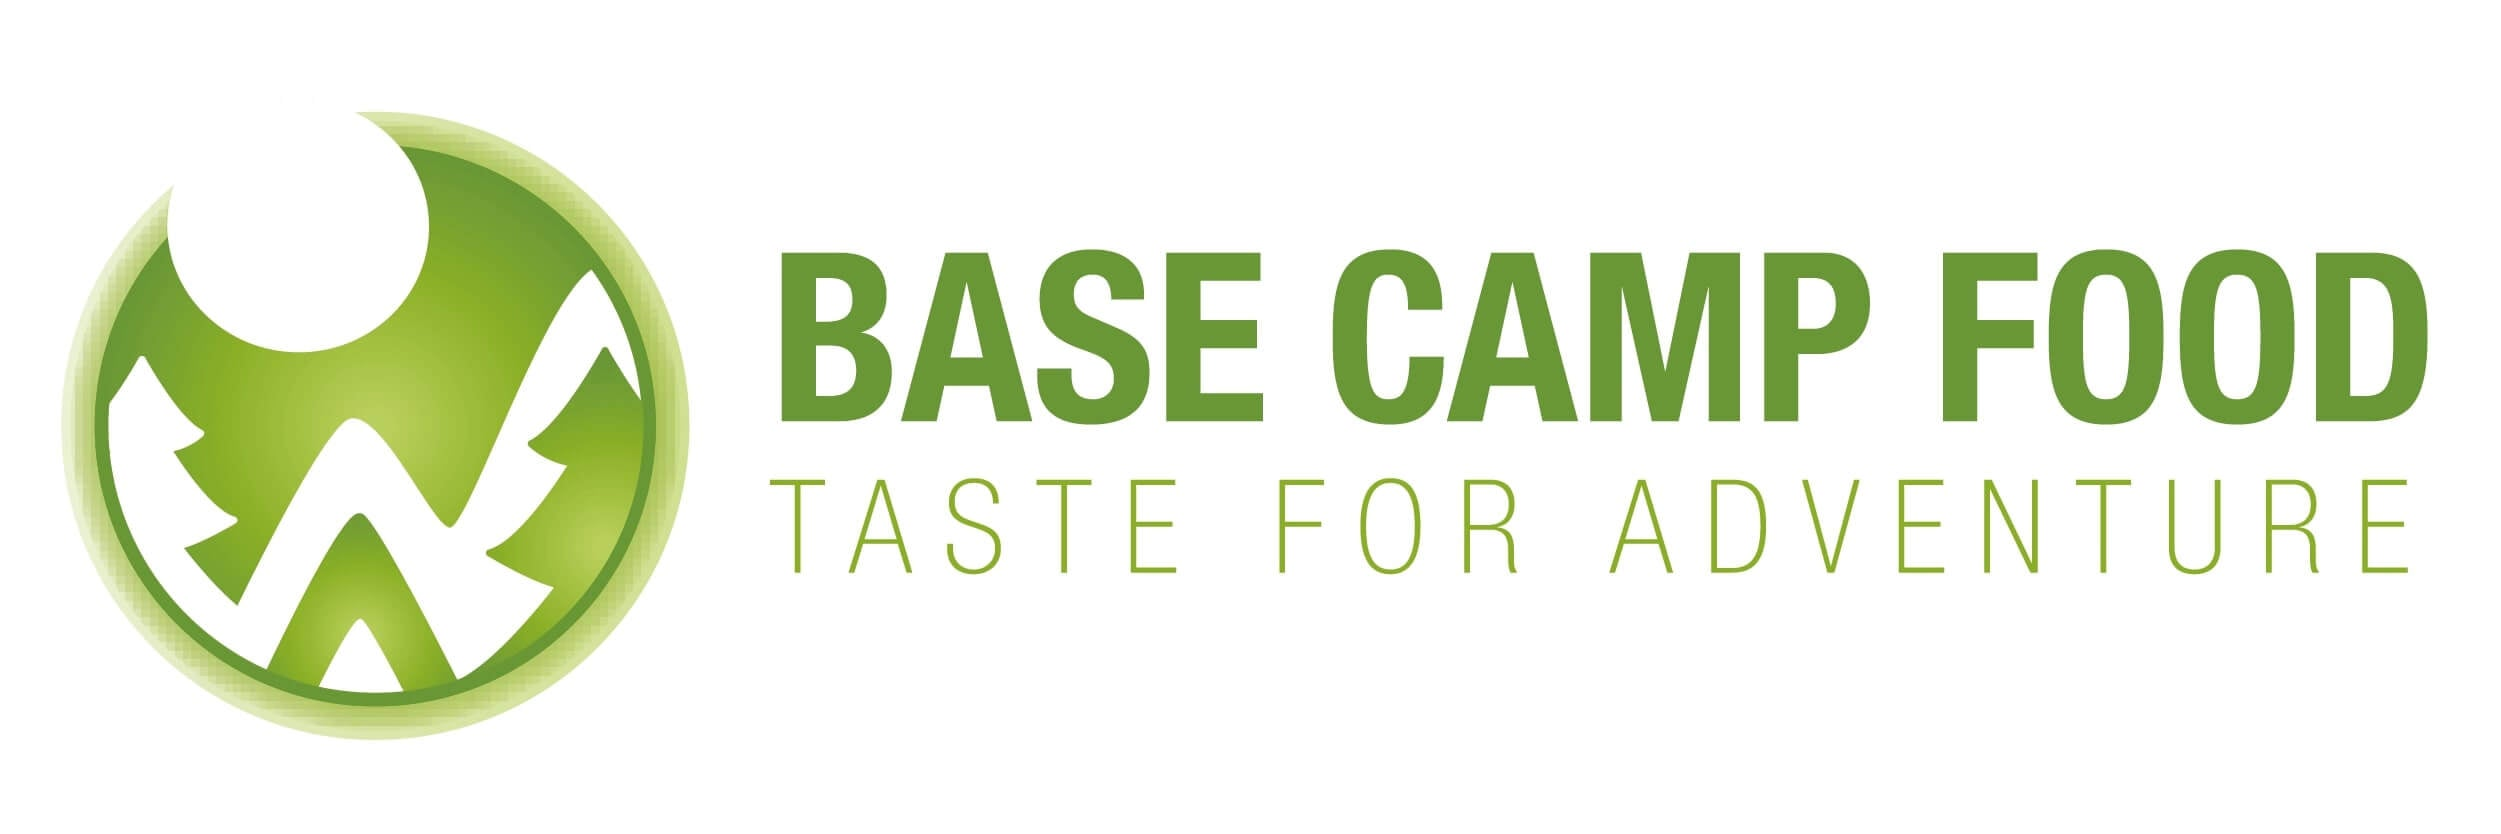 base camp food logo